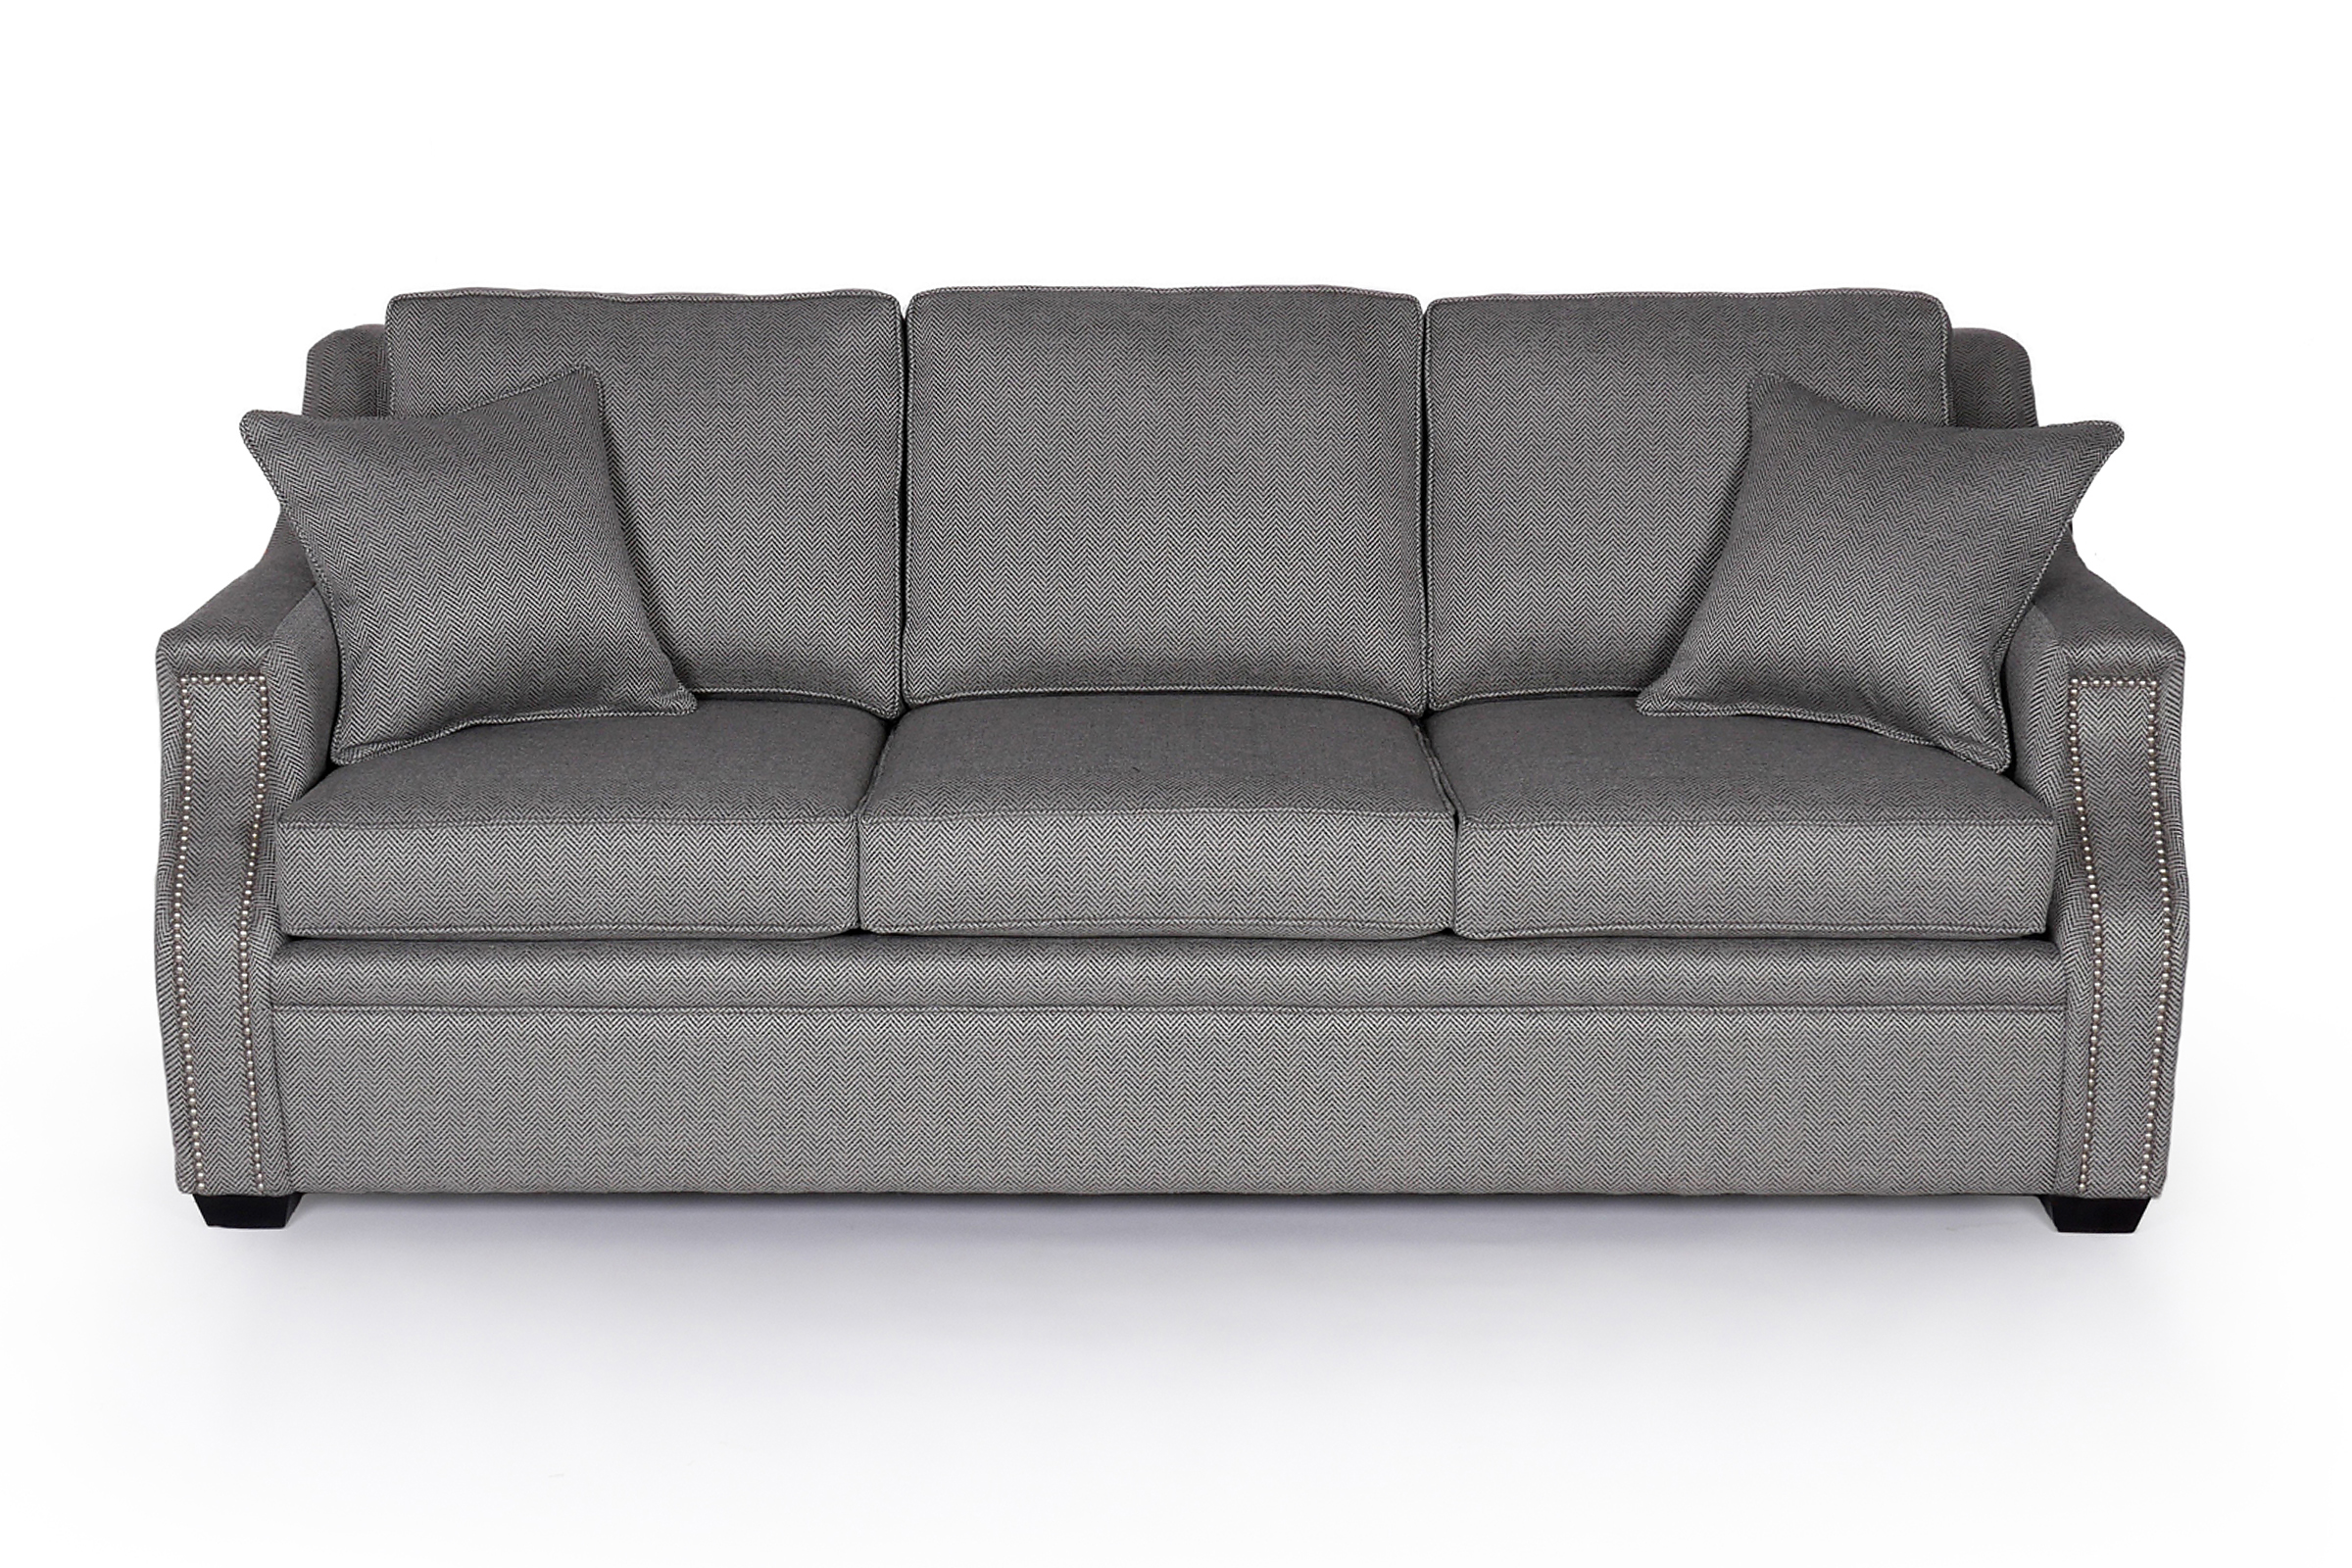 Category sofabeds